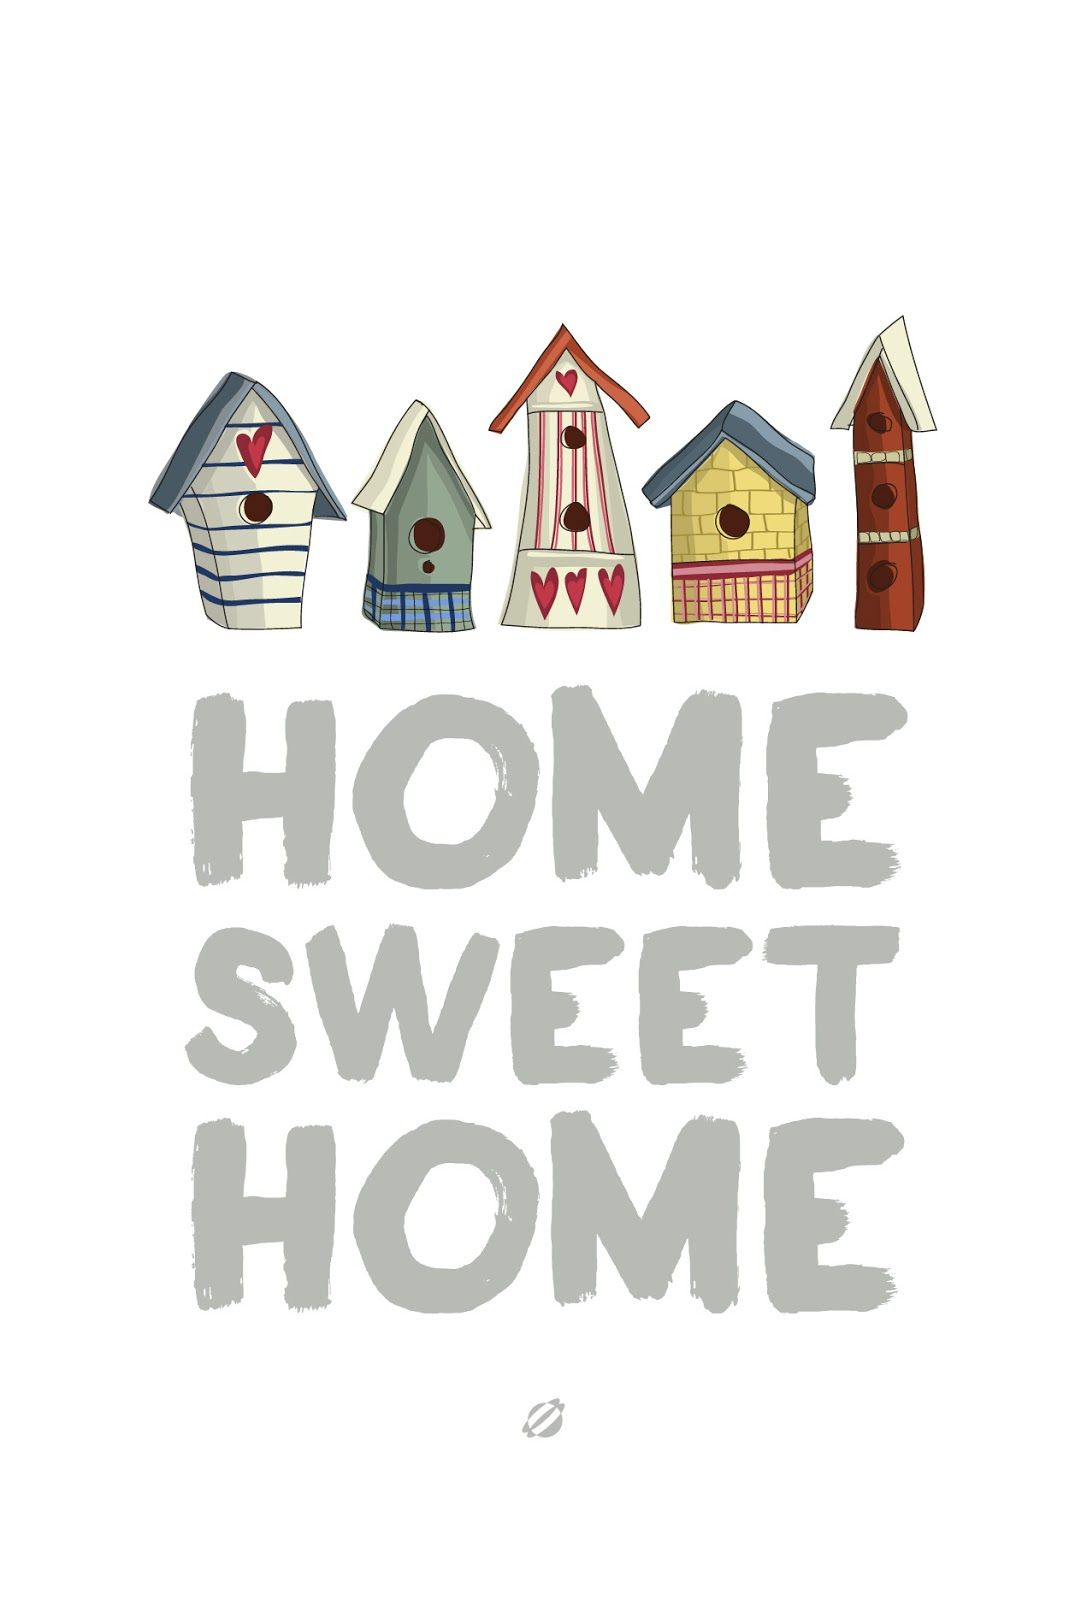 Free Quote Printable: Home Sweet Home / Lostbumblebee | Home Sweet - Home Sweet Home Free Printable